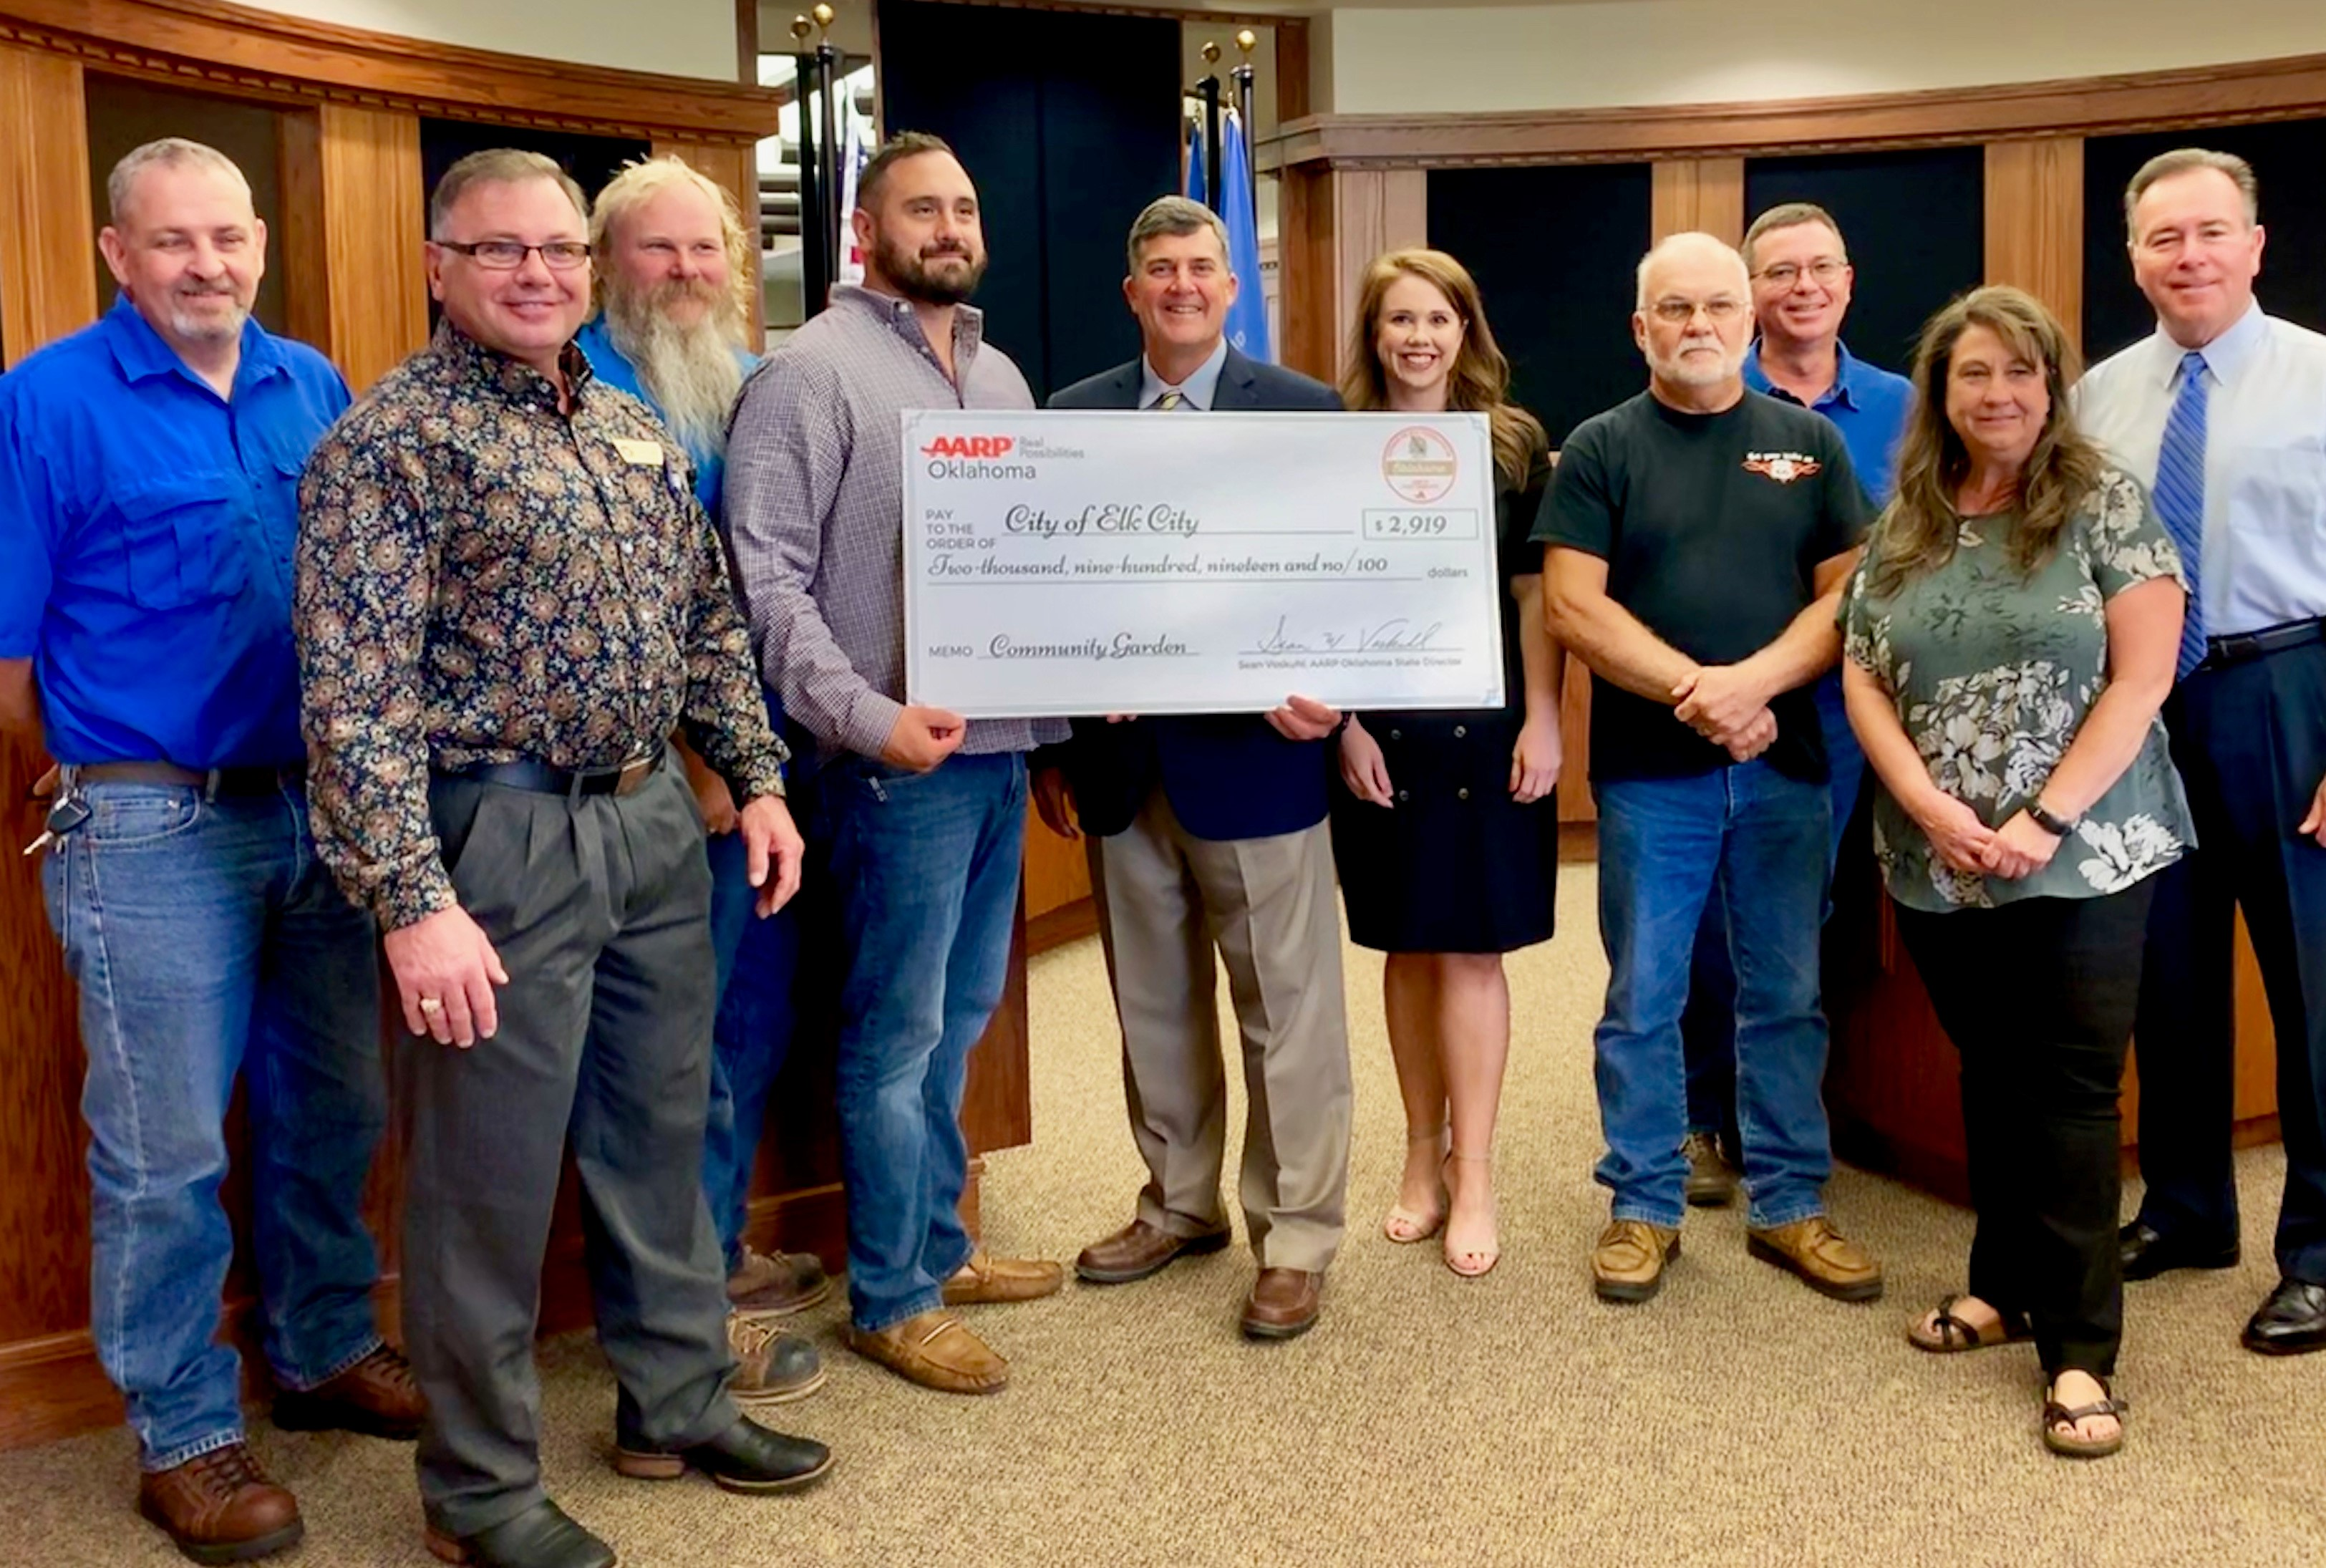 City of Elk City Presented with Honorary Grant Check by AARP Oklahoma for Community Garden Updates